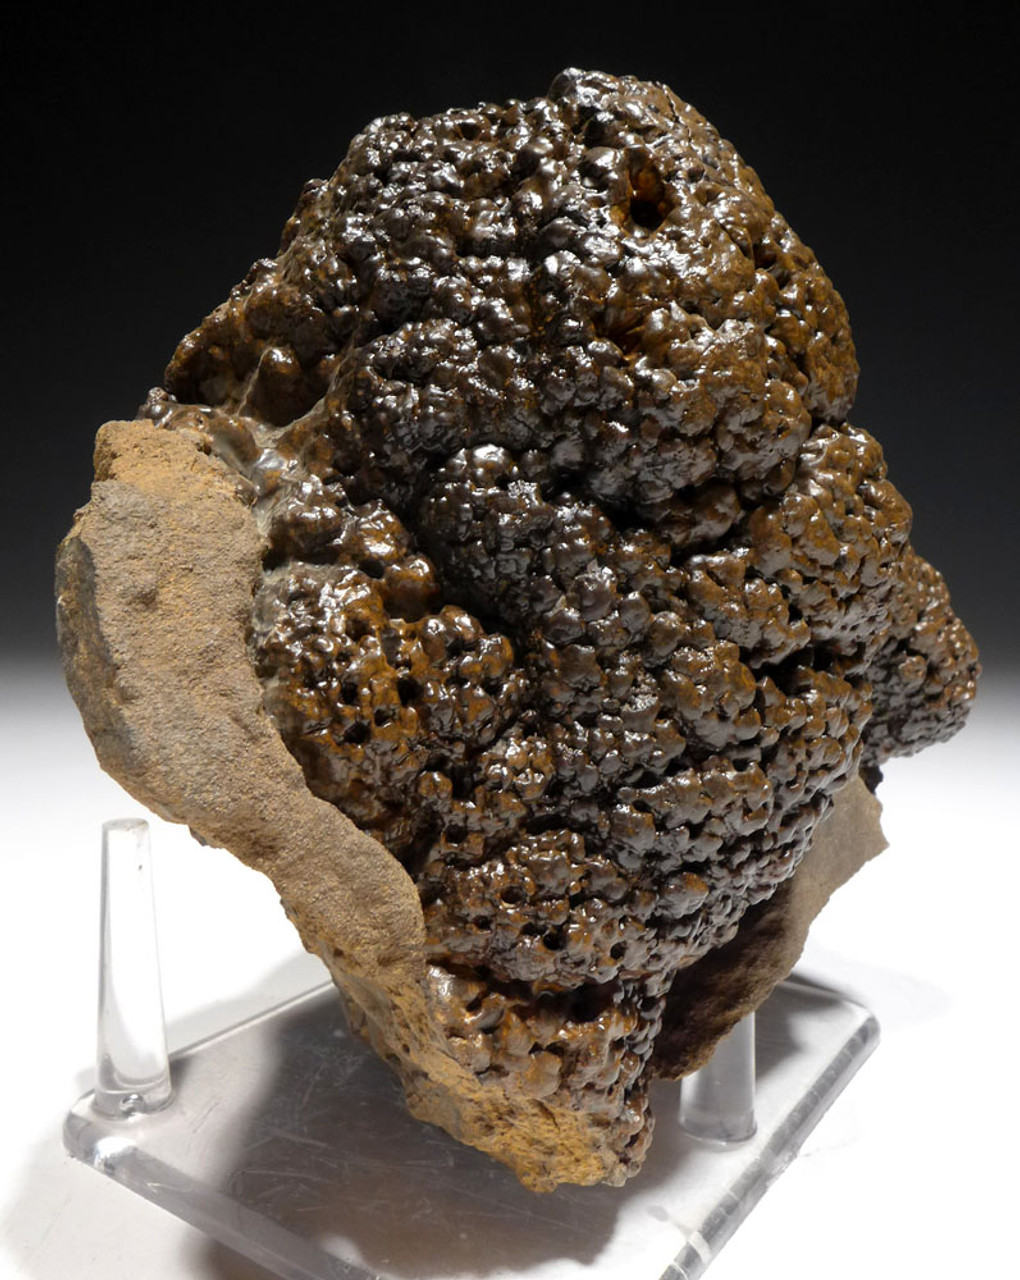 EXTREMELY RARE LARGE PERMIAN CYANOBACTERIA FOSSIL STROMATOLITE COLONY IN NATURAL FORM *STX505